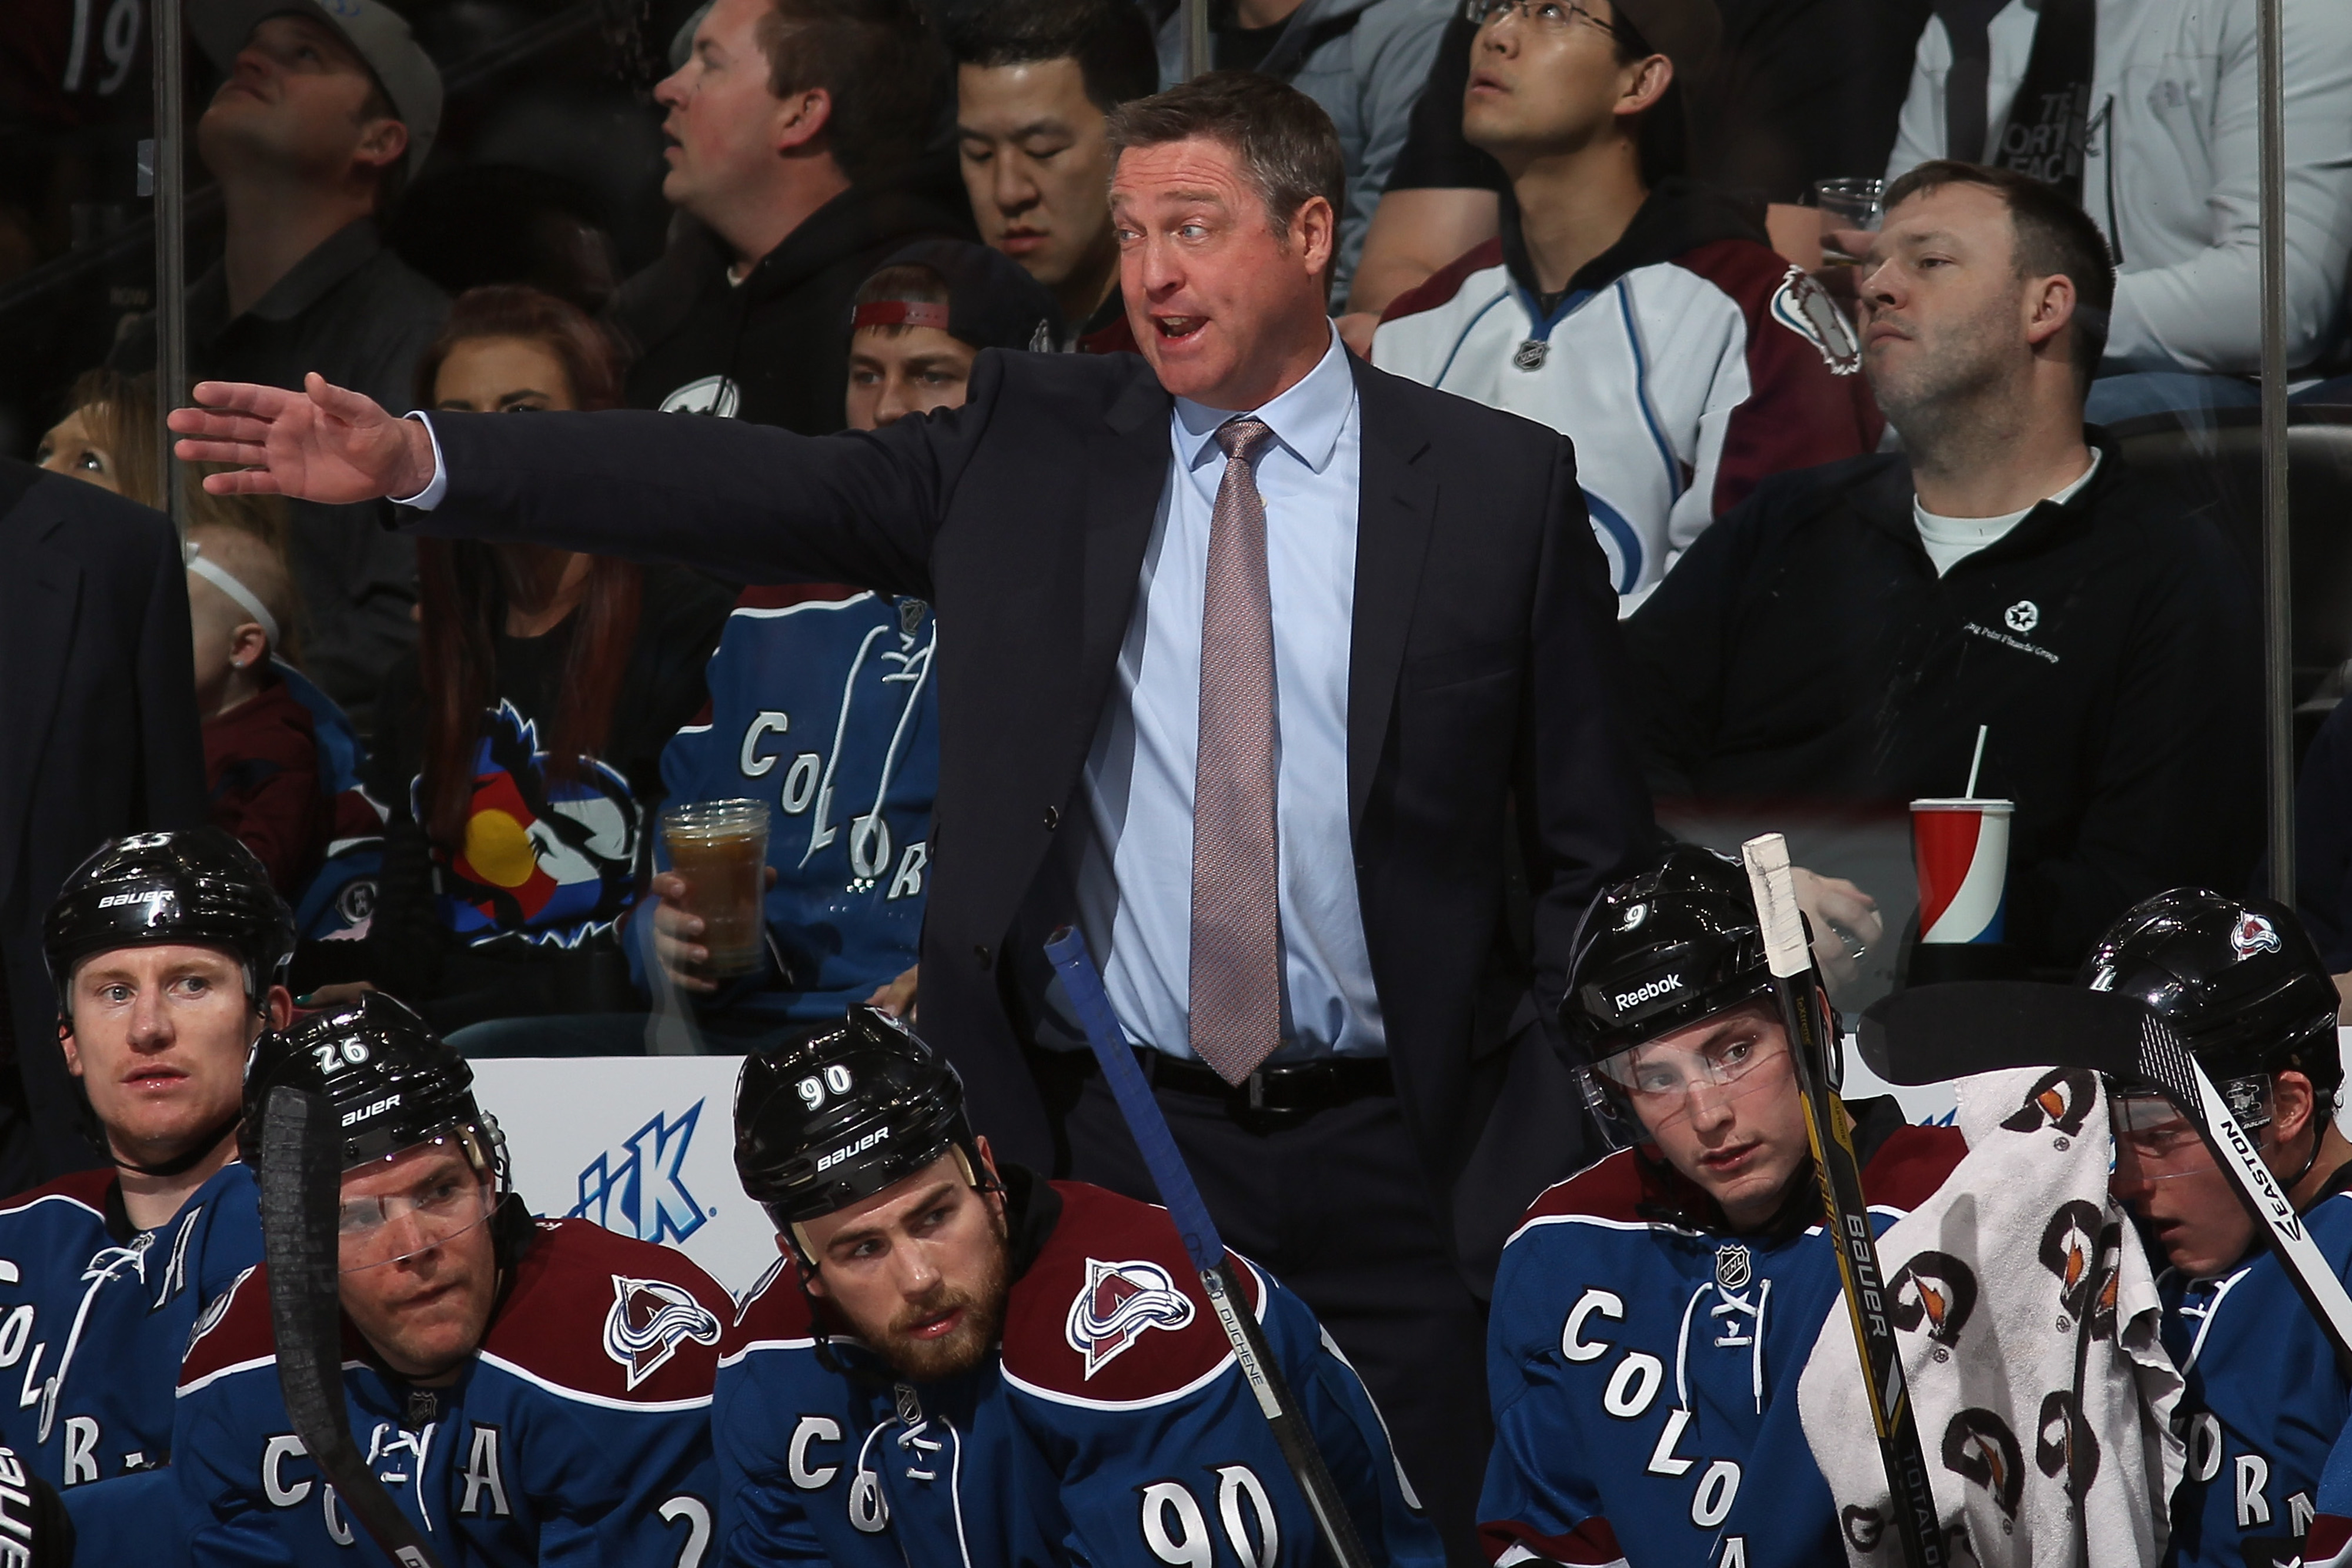 NHL playoffs: It's never too early for Patrick Roy to pull his goalie